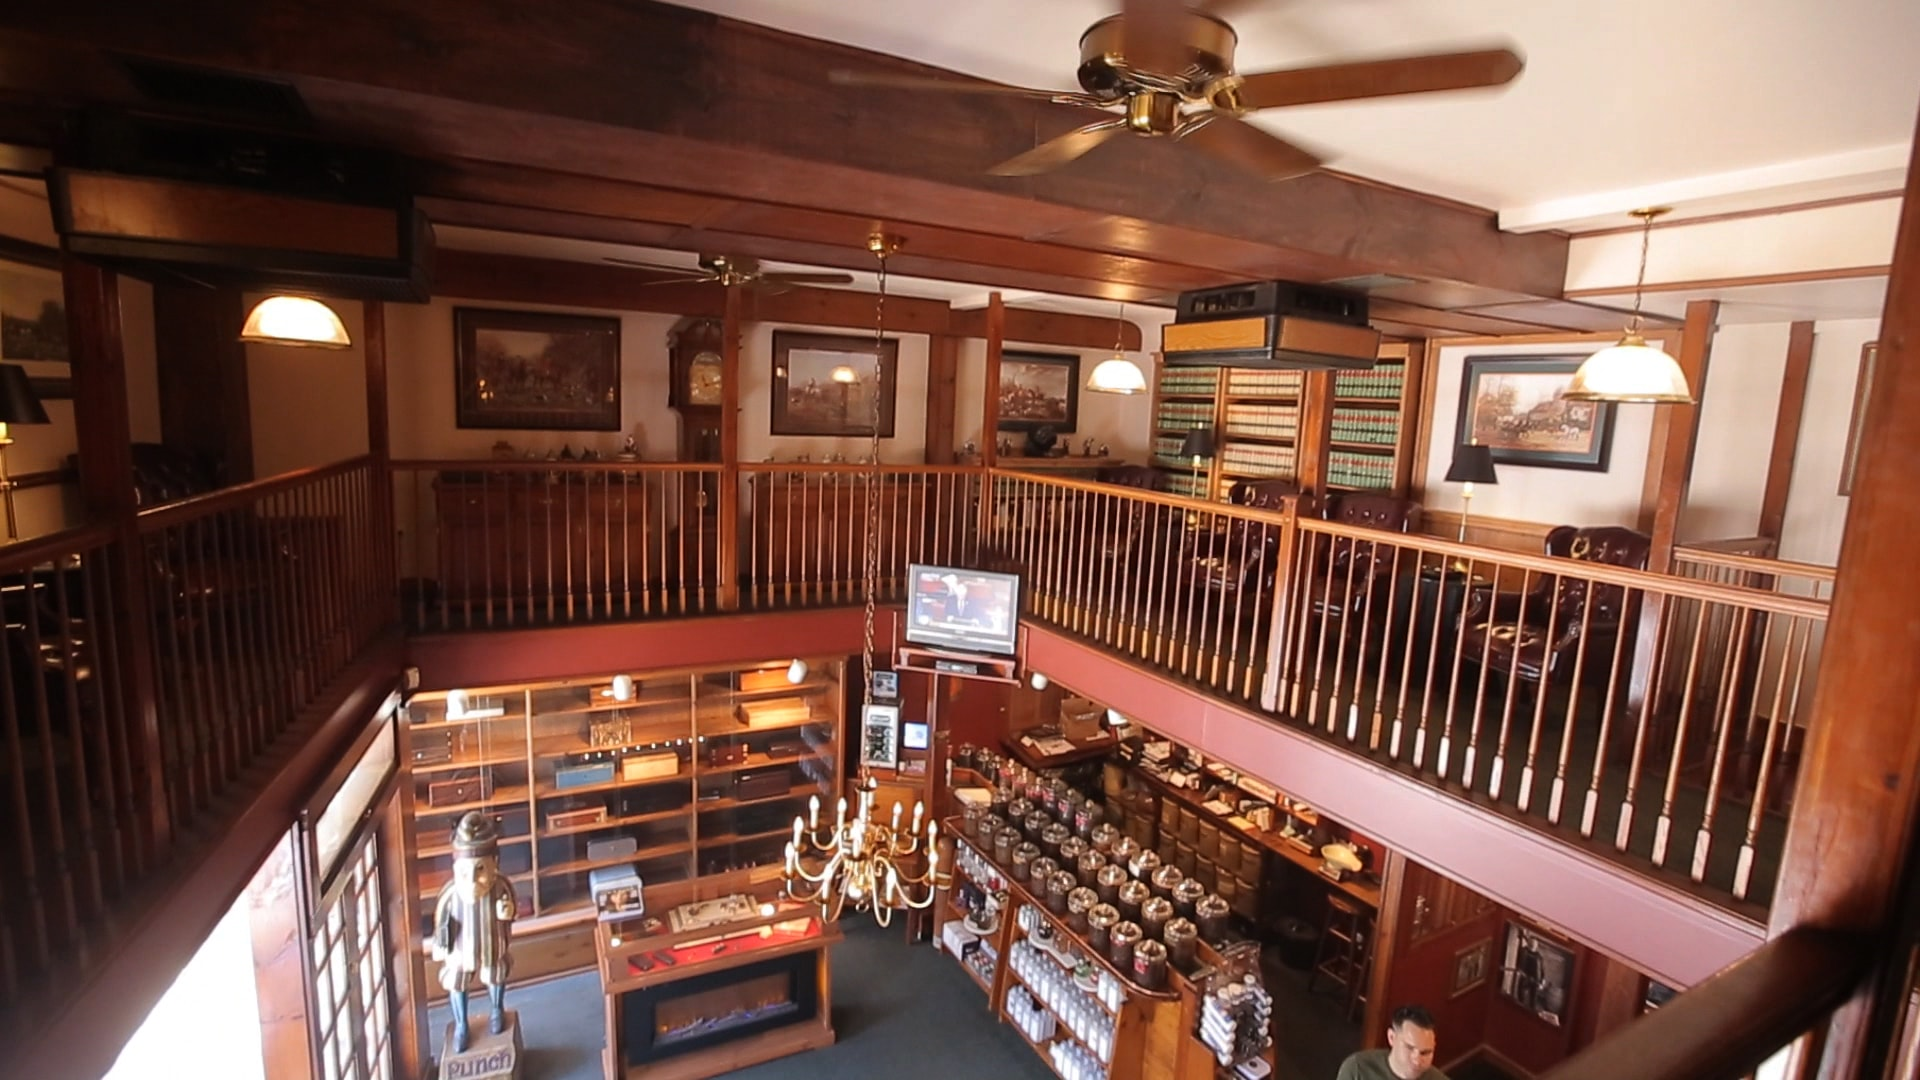 Mezzanine Cigar Lounge at The Tobacco Shop of Ridgewood